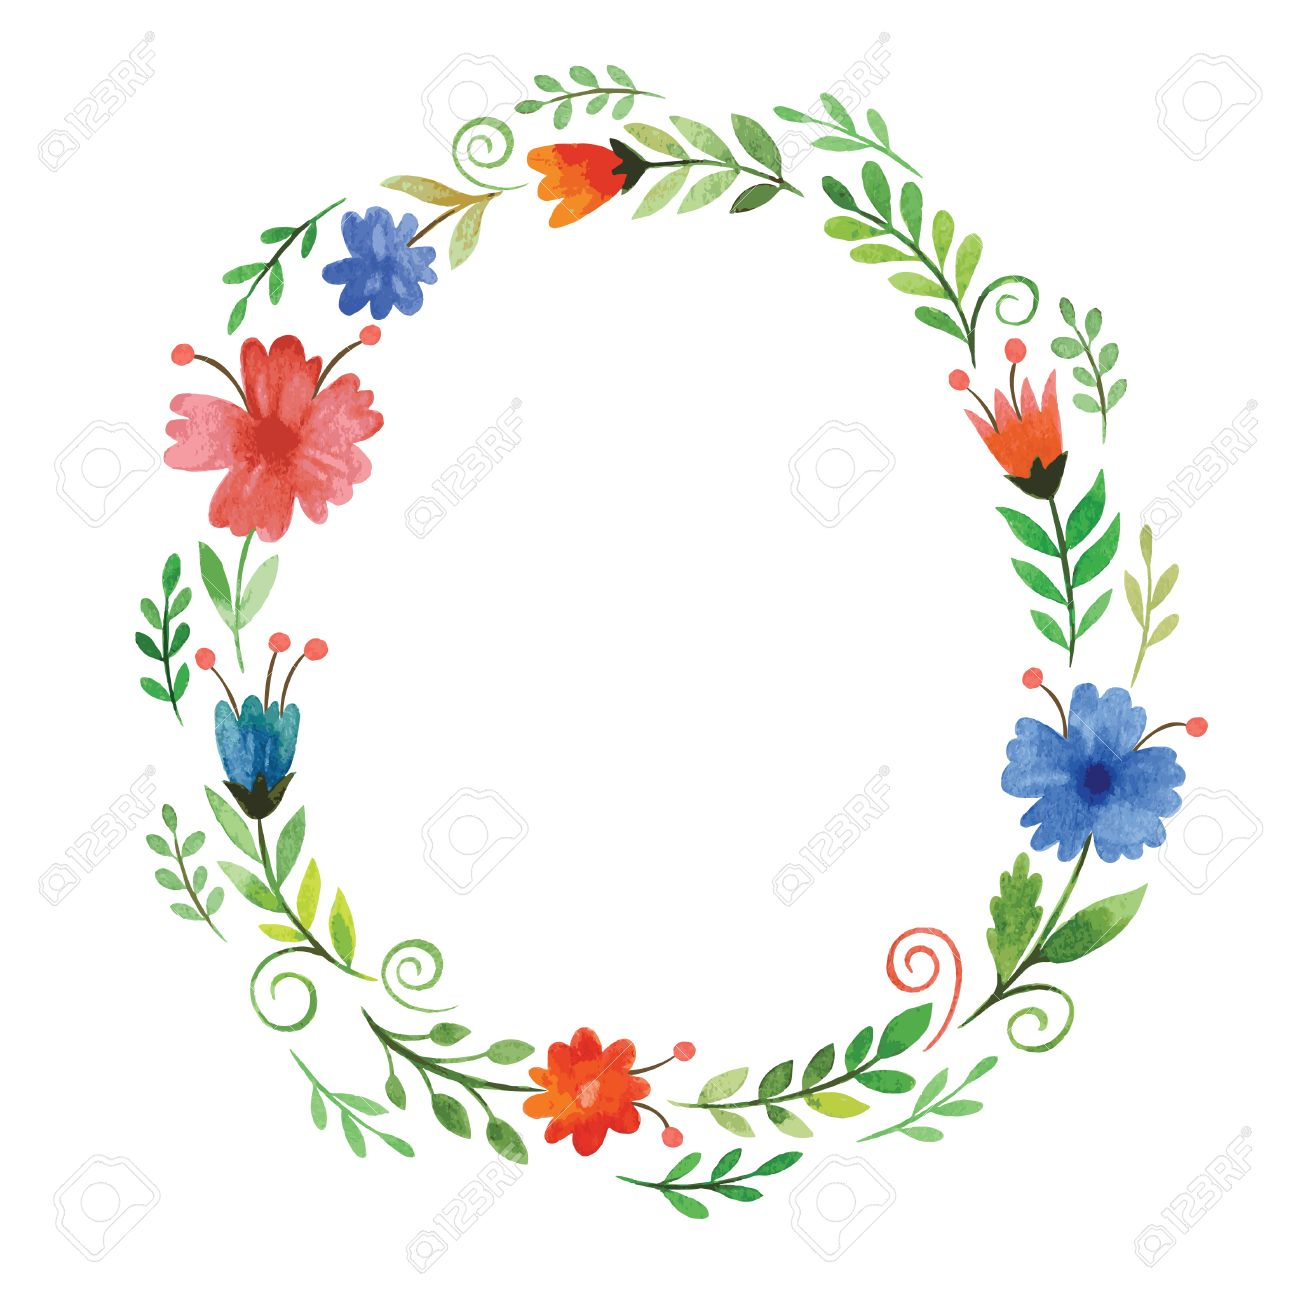 Watercolor Floral Frame Stock Vector